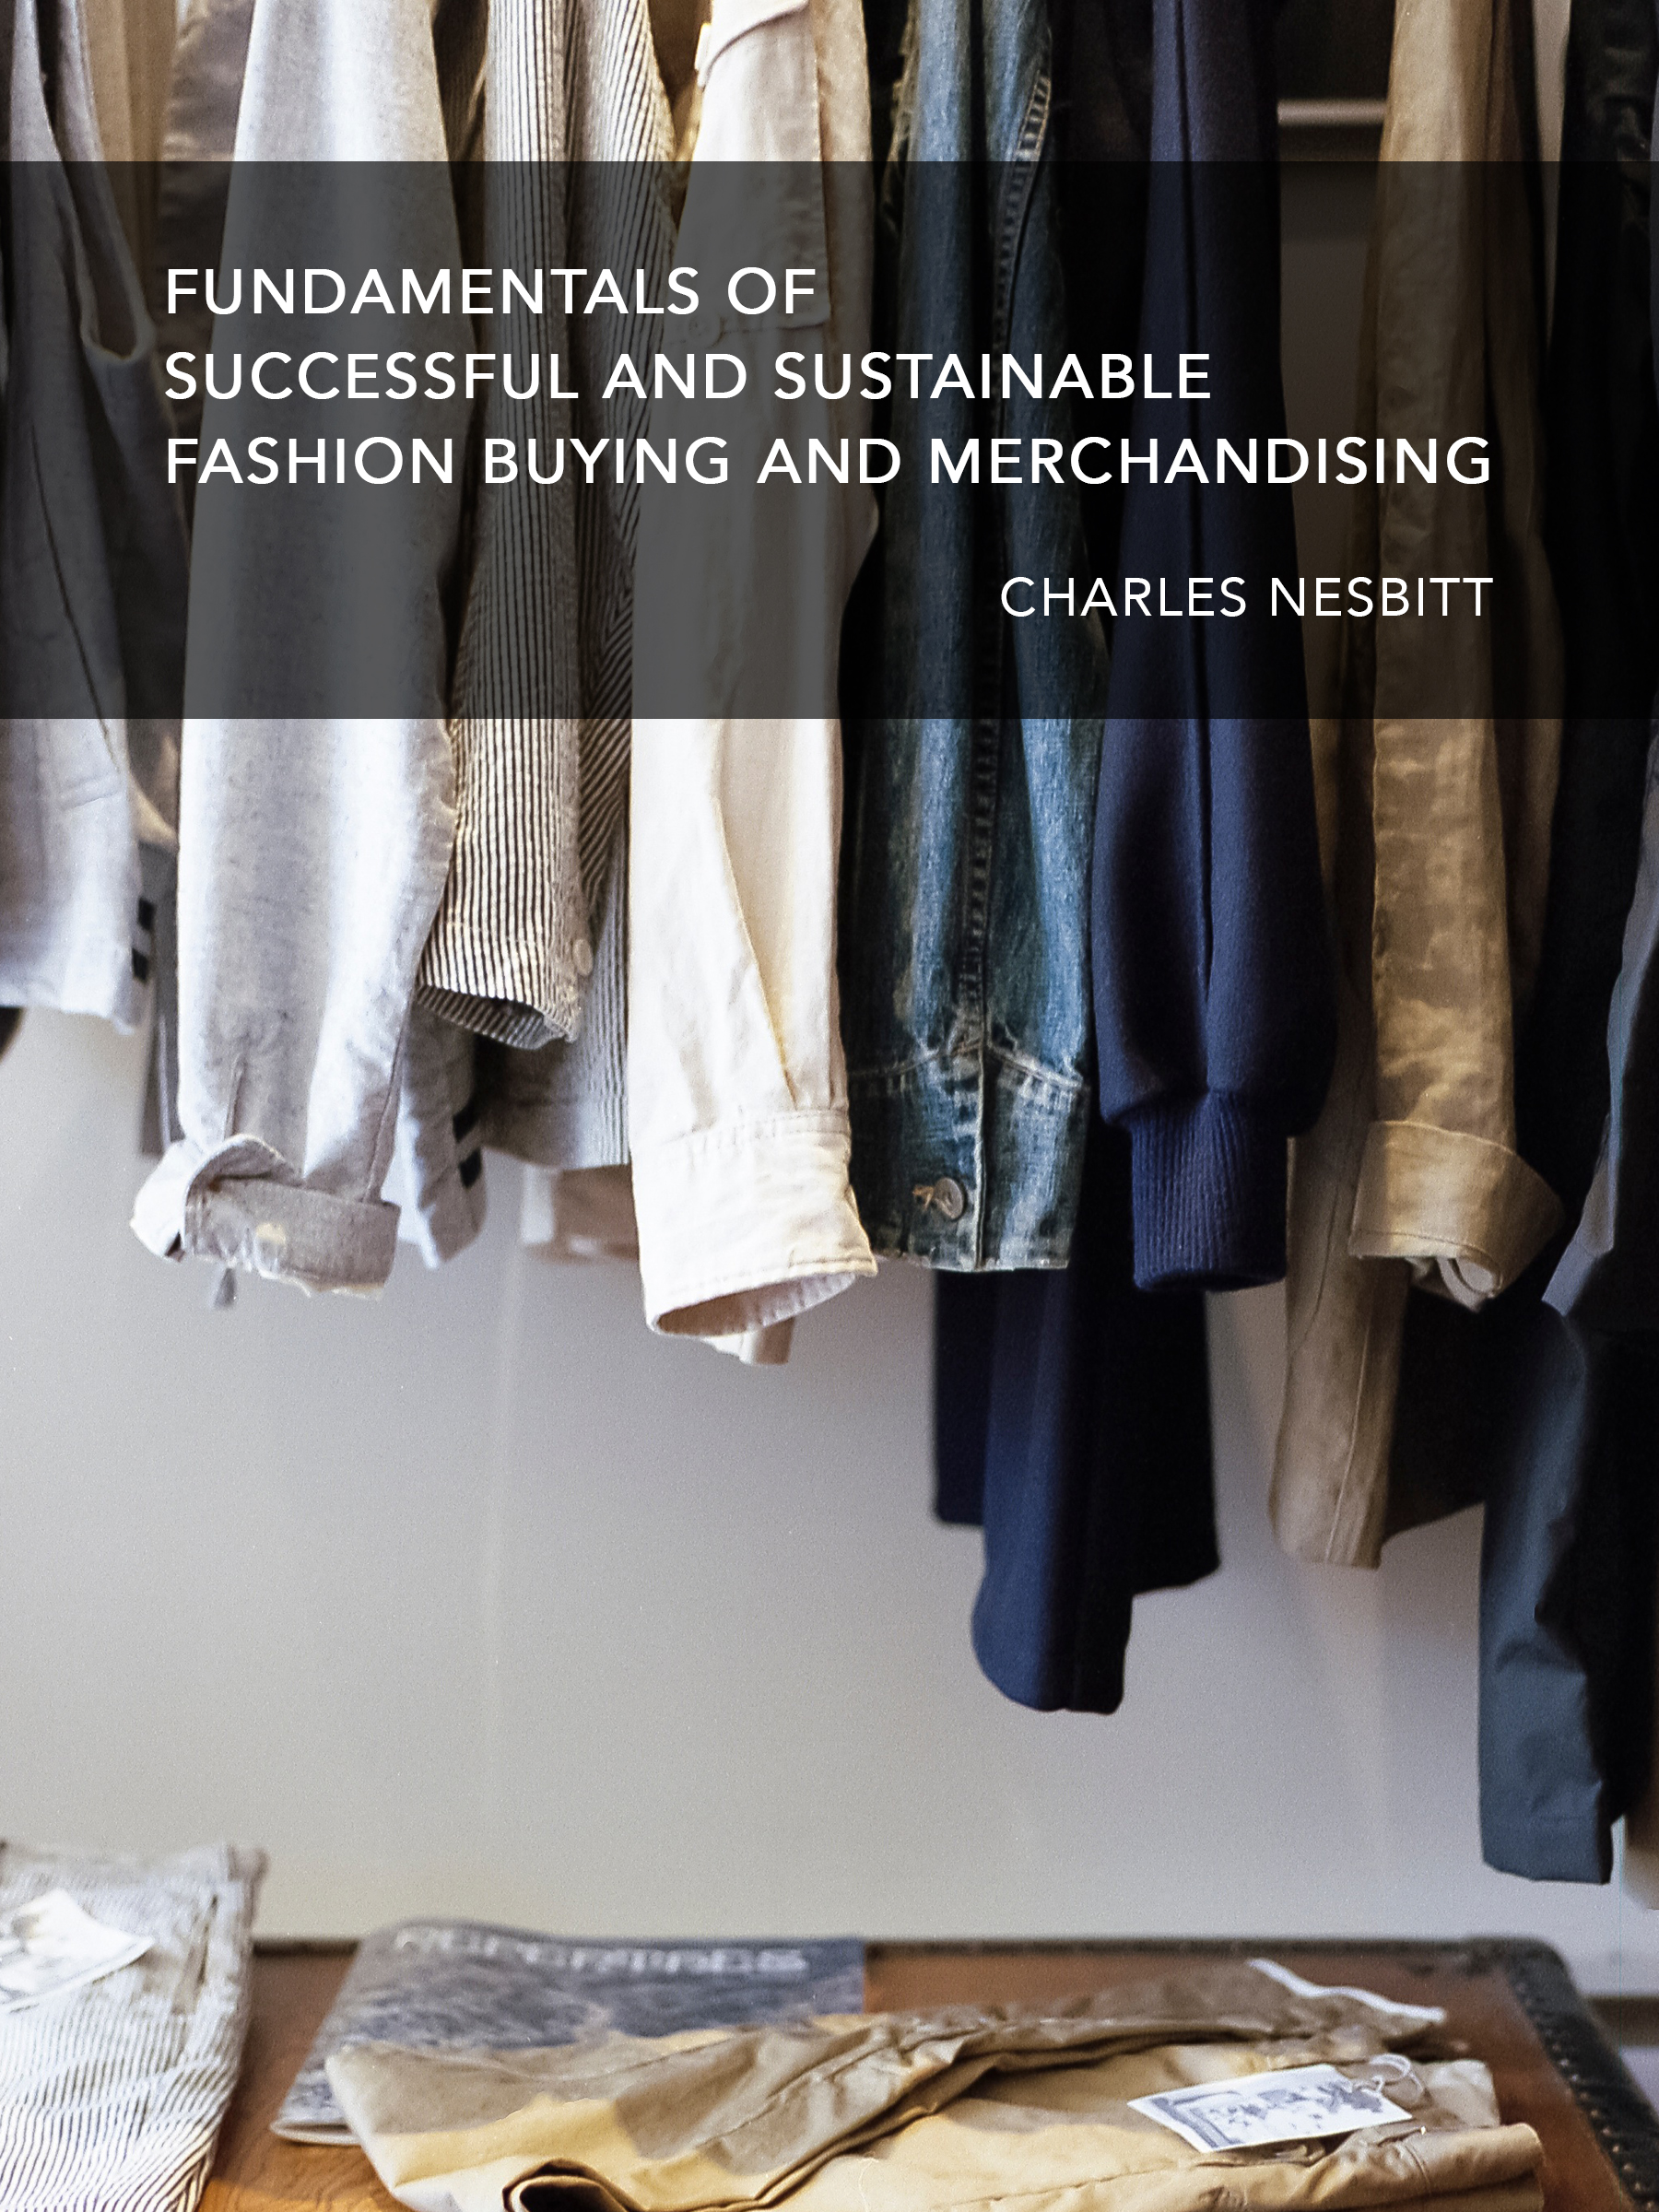 Smashwords Fundamentals For Successful And Sustainable Fashion Buying And Merchandising A Book By Charles Nesbitt